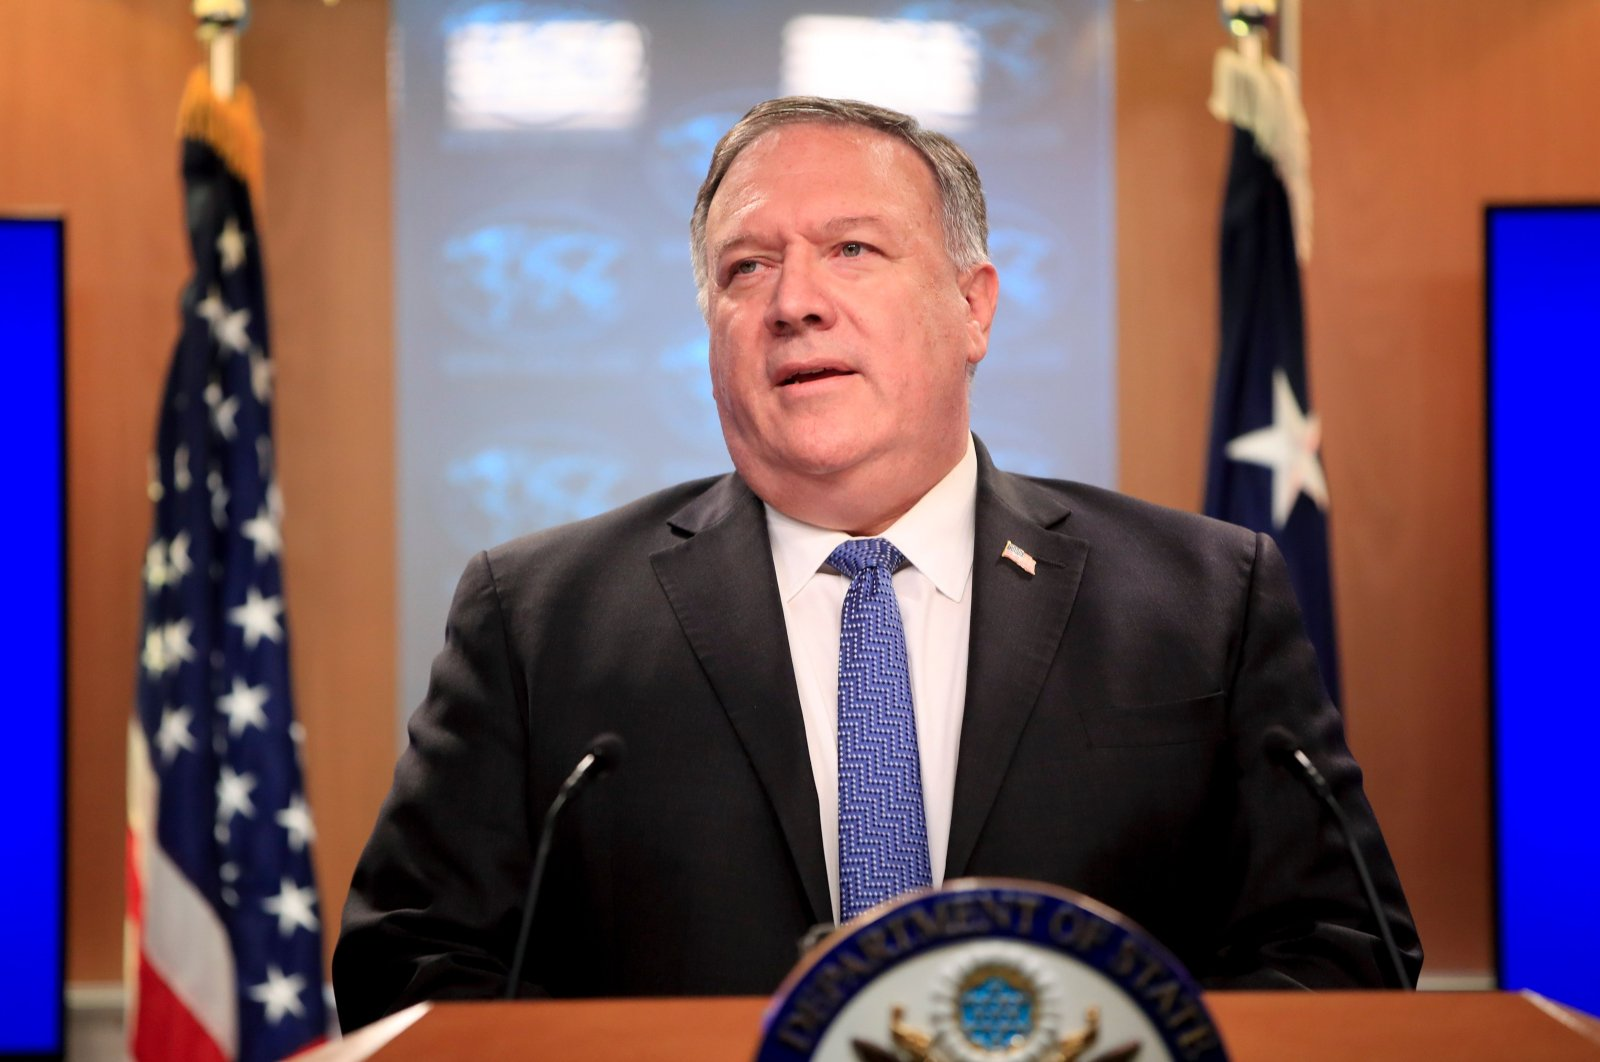 U.S. Secretary of State Mike Pompeo speaks during a news conference at the State Department, Washington, D.C., U.S., Aug. 5, 2020. (AFP Photo)